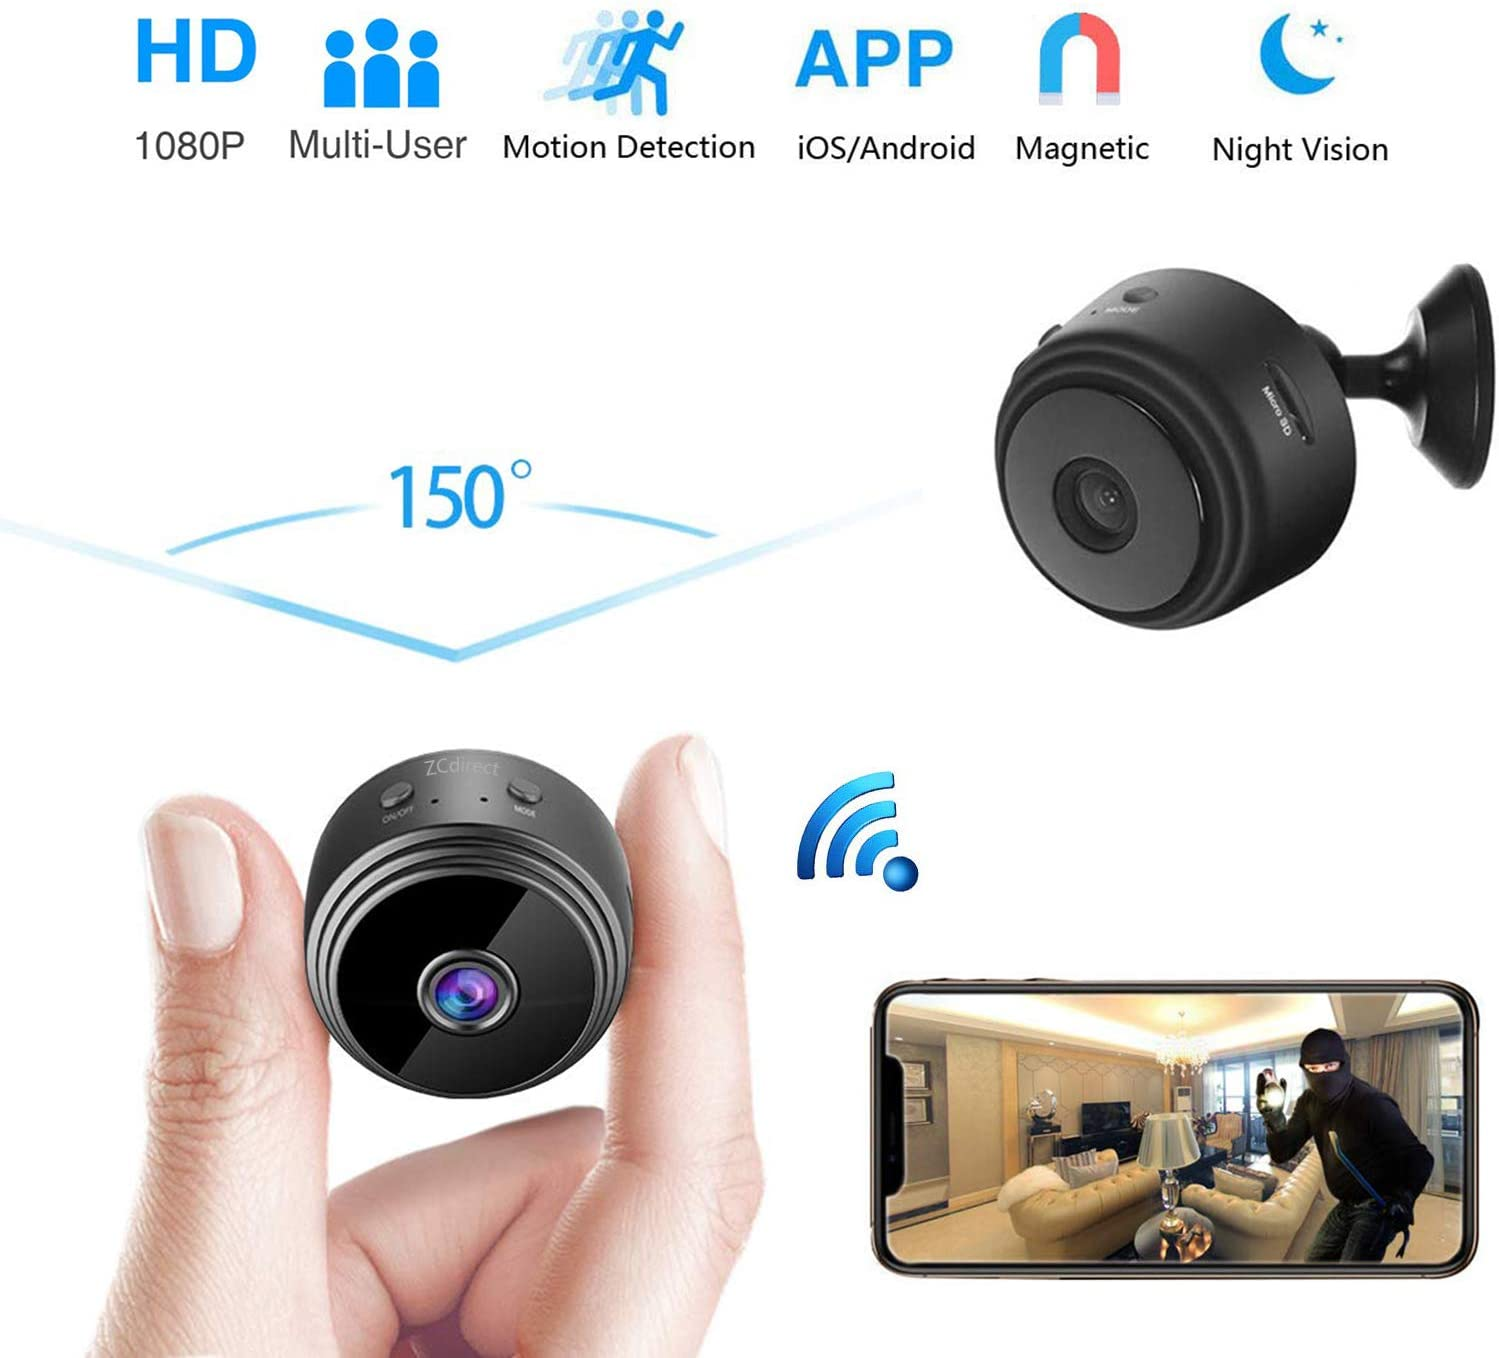 Spy Camera-Hidden Camera, Wireless HD 1080P WiFi Mini Camera with Night Vision,Motion Detection,Indoor Covert Nanny Security Camera,Remote Live View Support iOS Android for Home and Offic